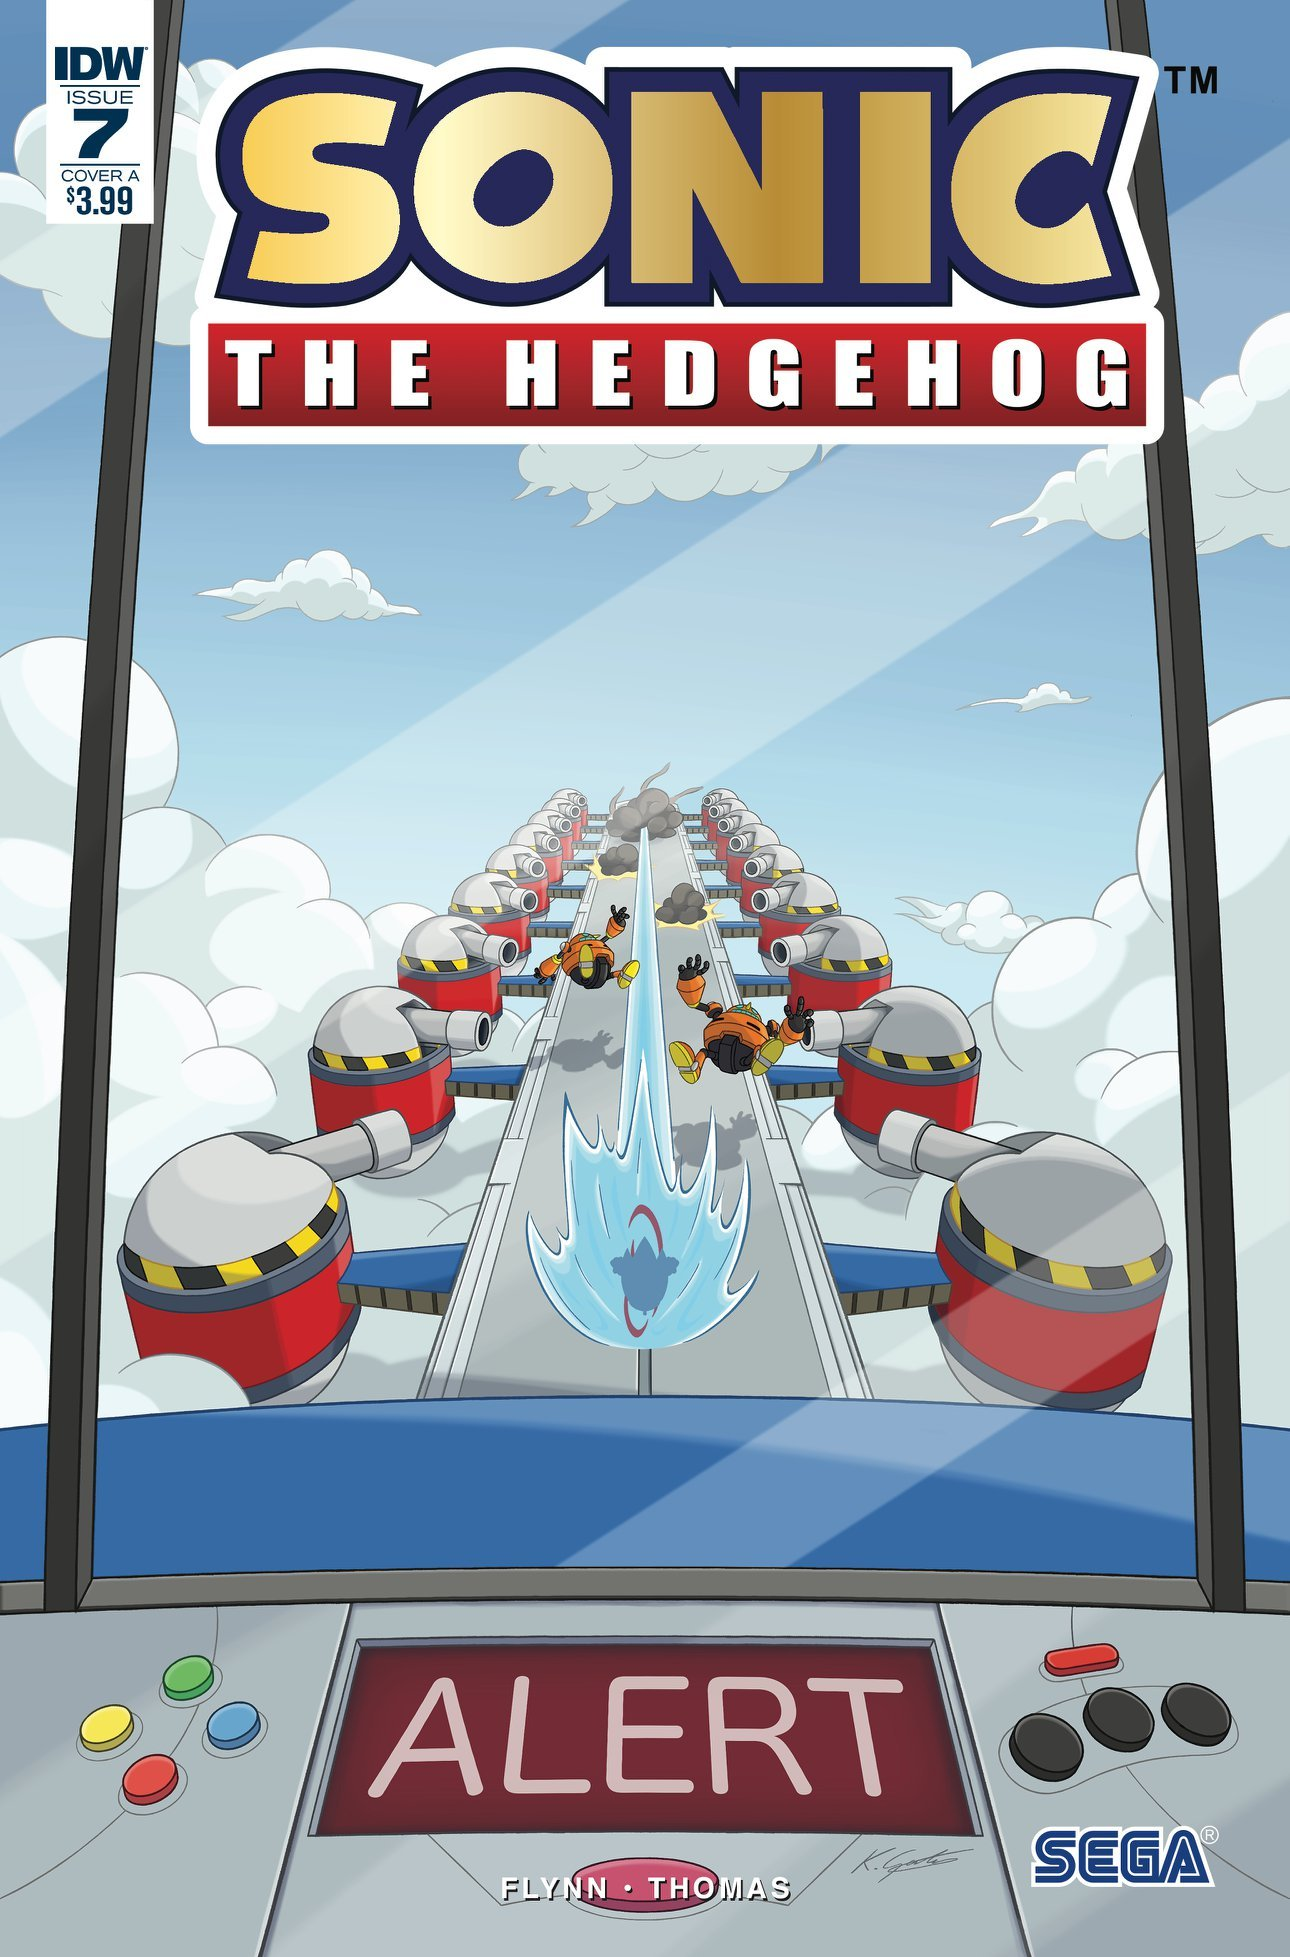 Sonic the Hedgehog 007 (July 2018) (cover a)